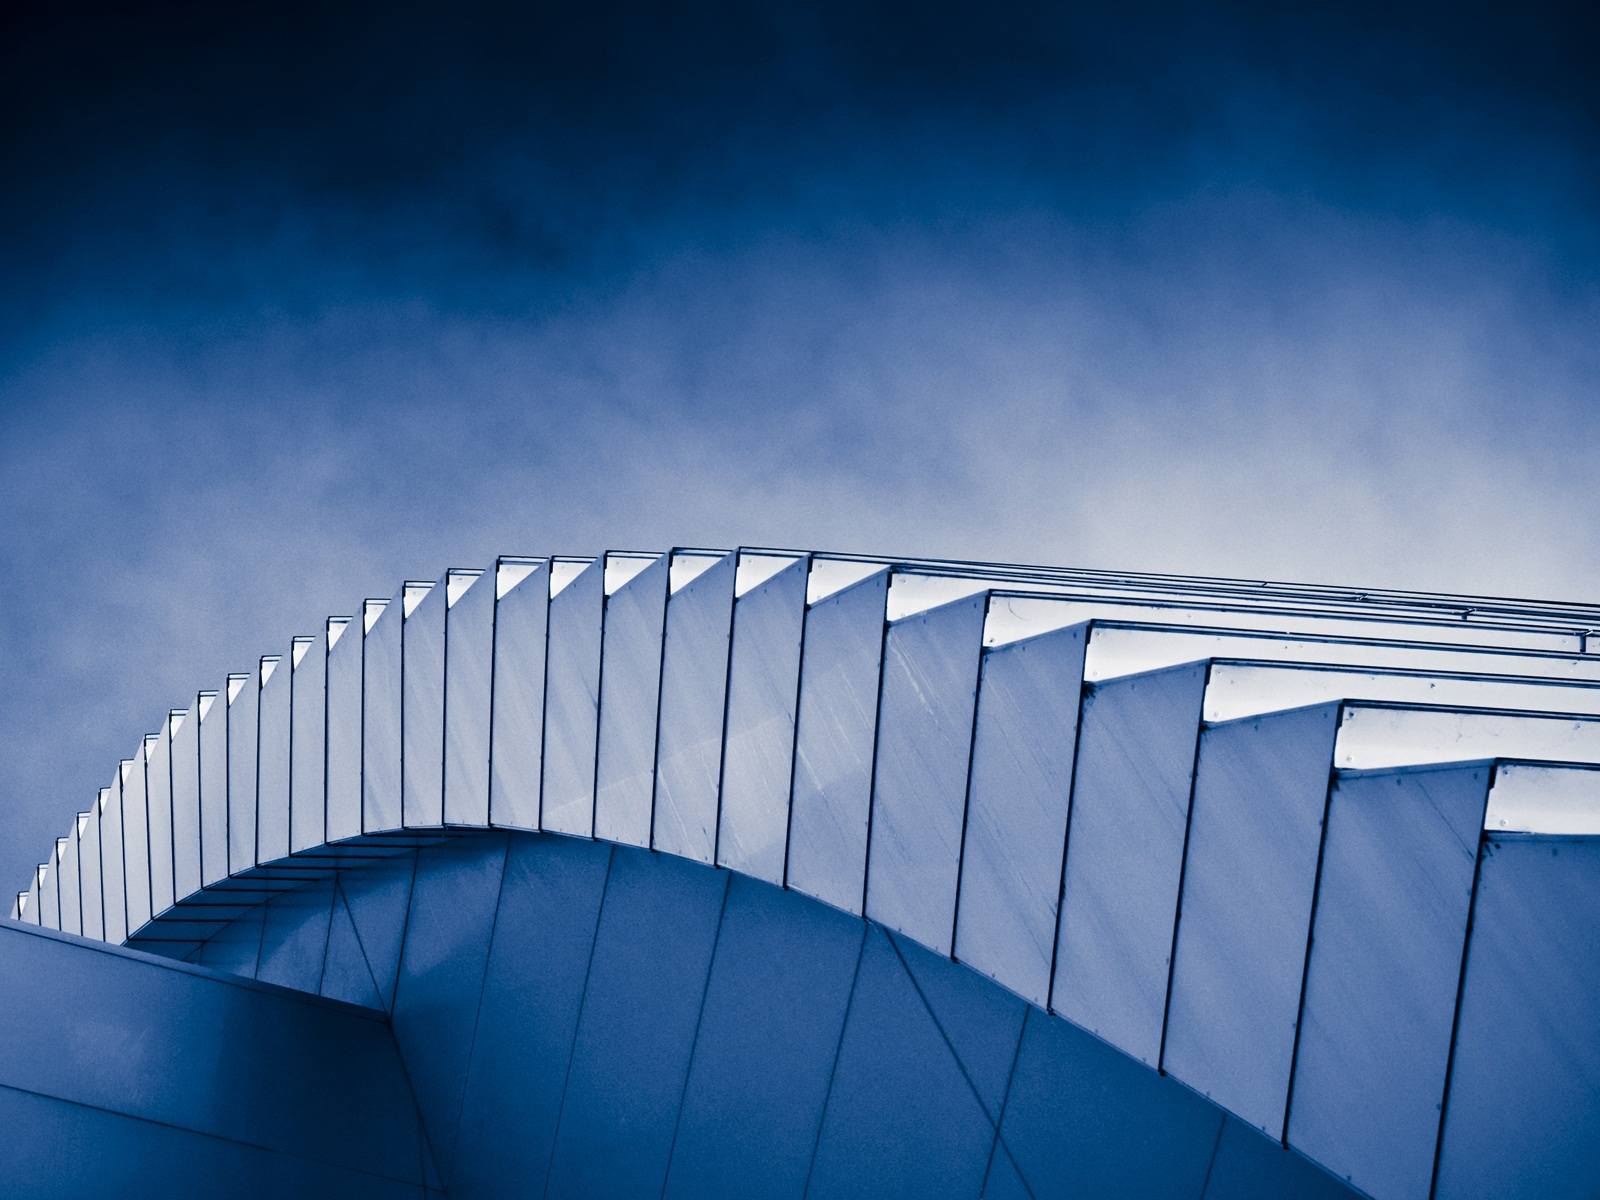 Architecture wallpapers for desktop hd |See To World